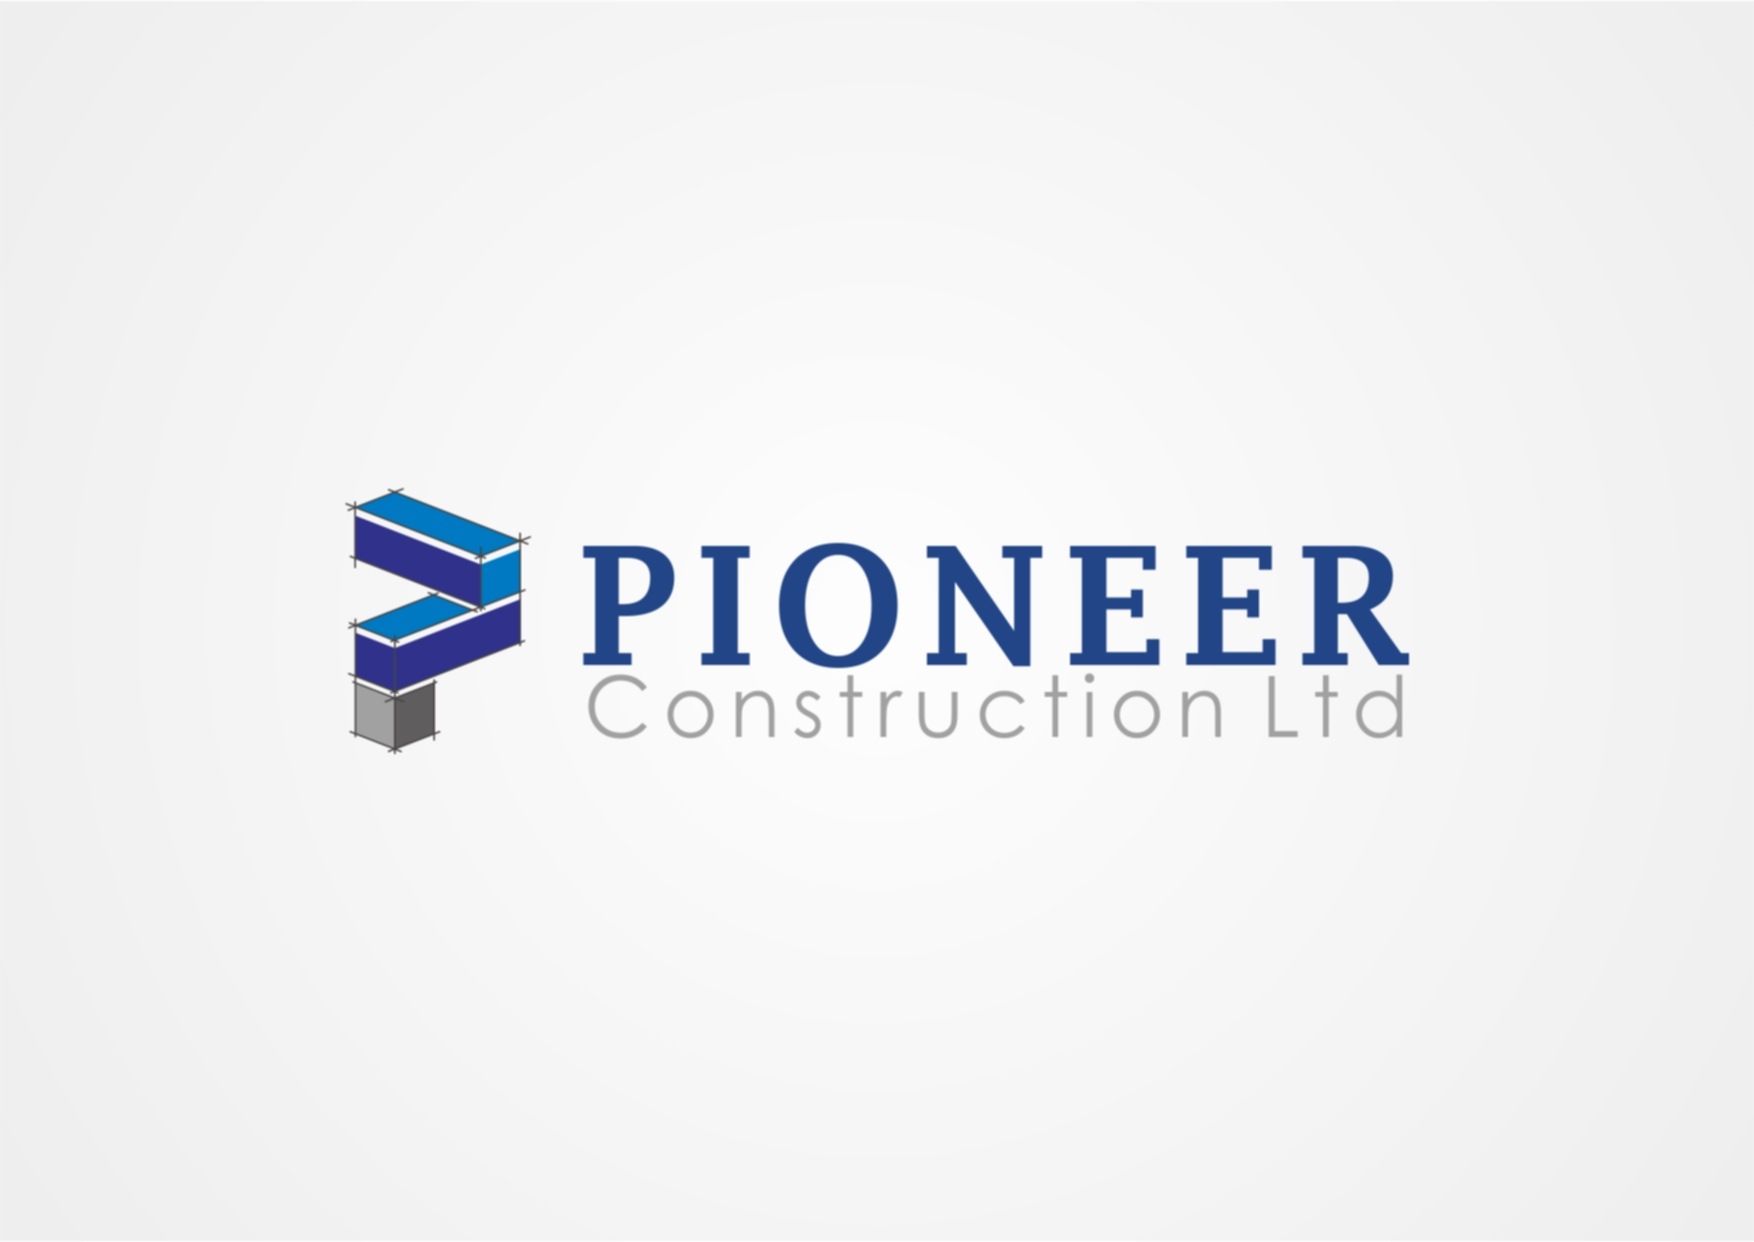 Logo Design by Private User - Entry No. 50 in the Logo Design Contest Imaginative Logo Design for  Pioneer Construction Ltd.